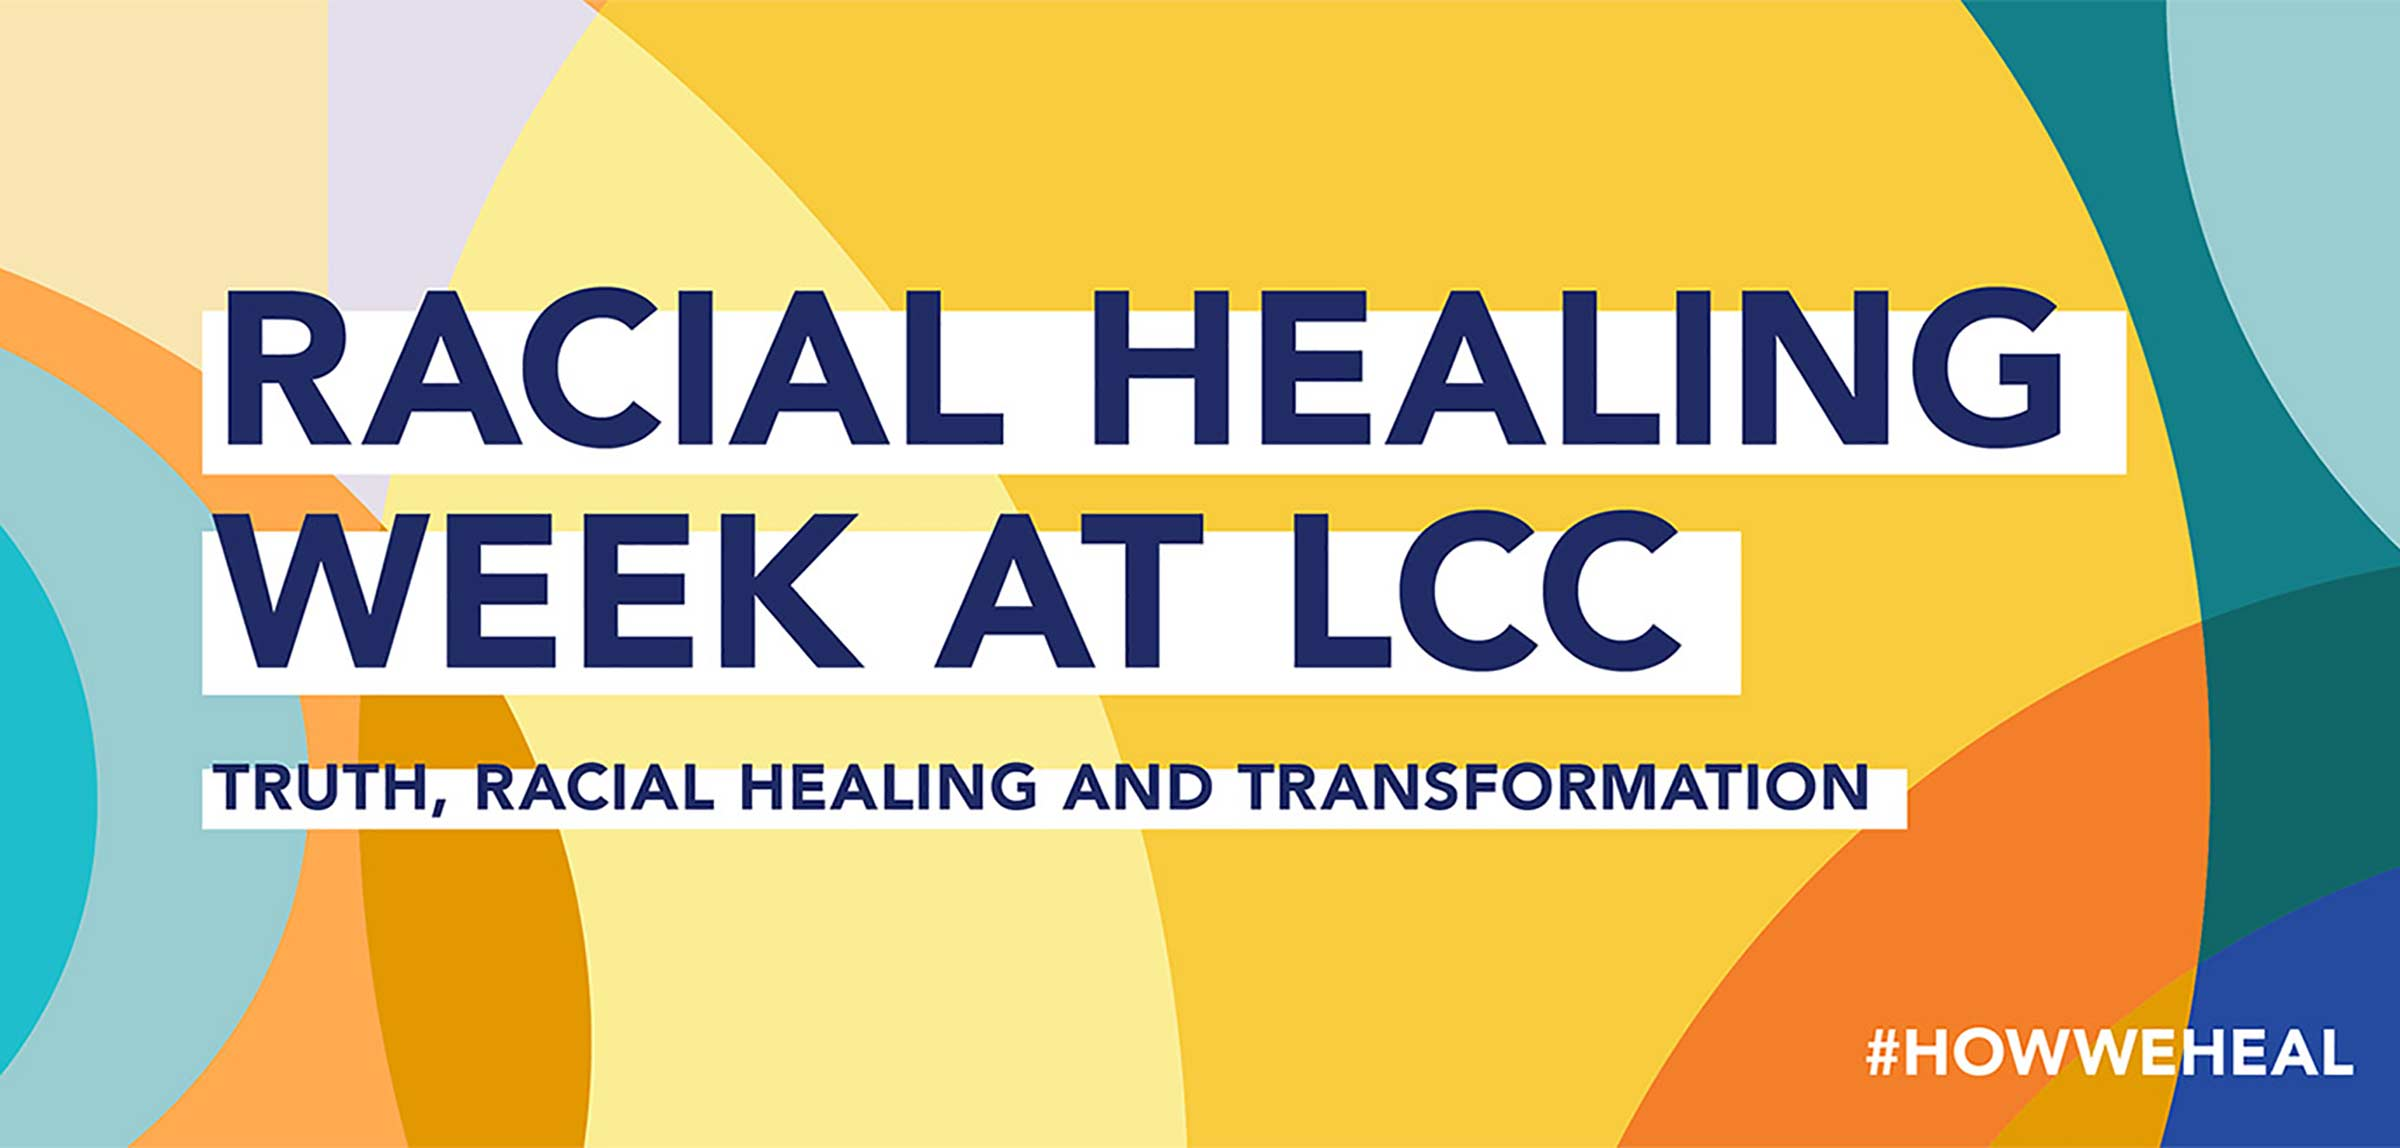 Lansing Community College Office of Diversity and Inclusion will lead the college in a week-long engagement of racial healing, equity, and justice Jan. 18-22.